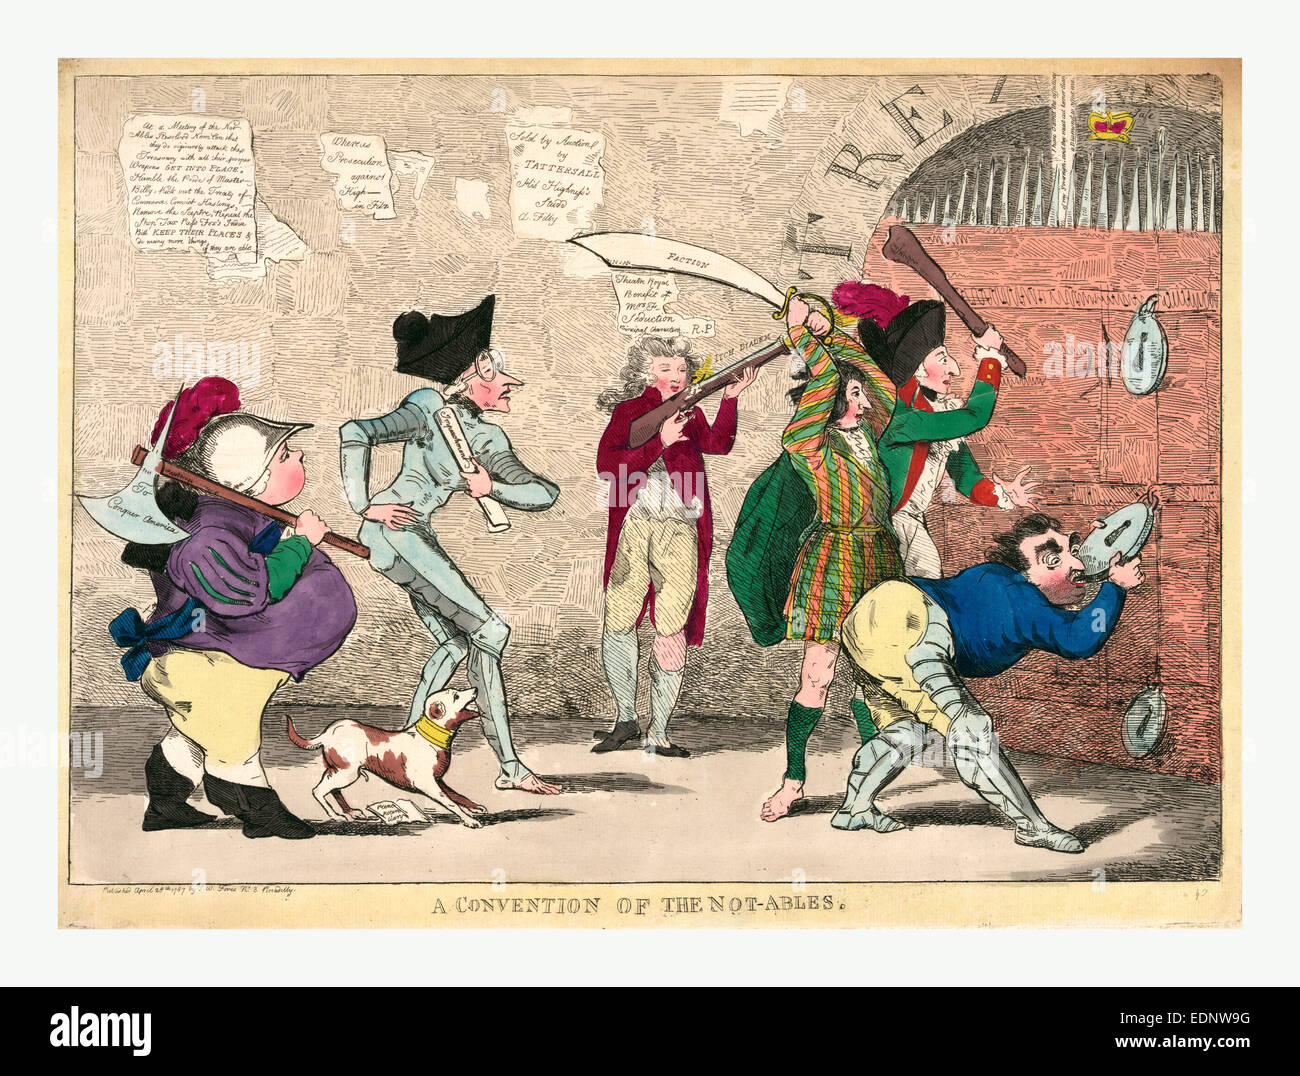 A convention of the not-ables, engraving 1787, Lord North, Edmund Burke, Charles Fox, the Prince of Wales - Stock Image